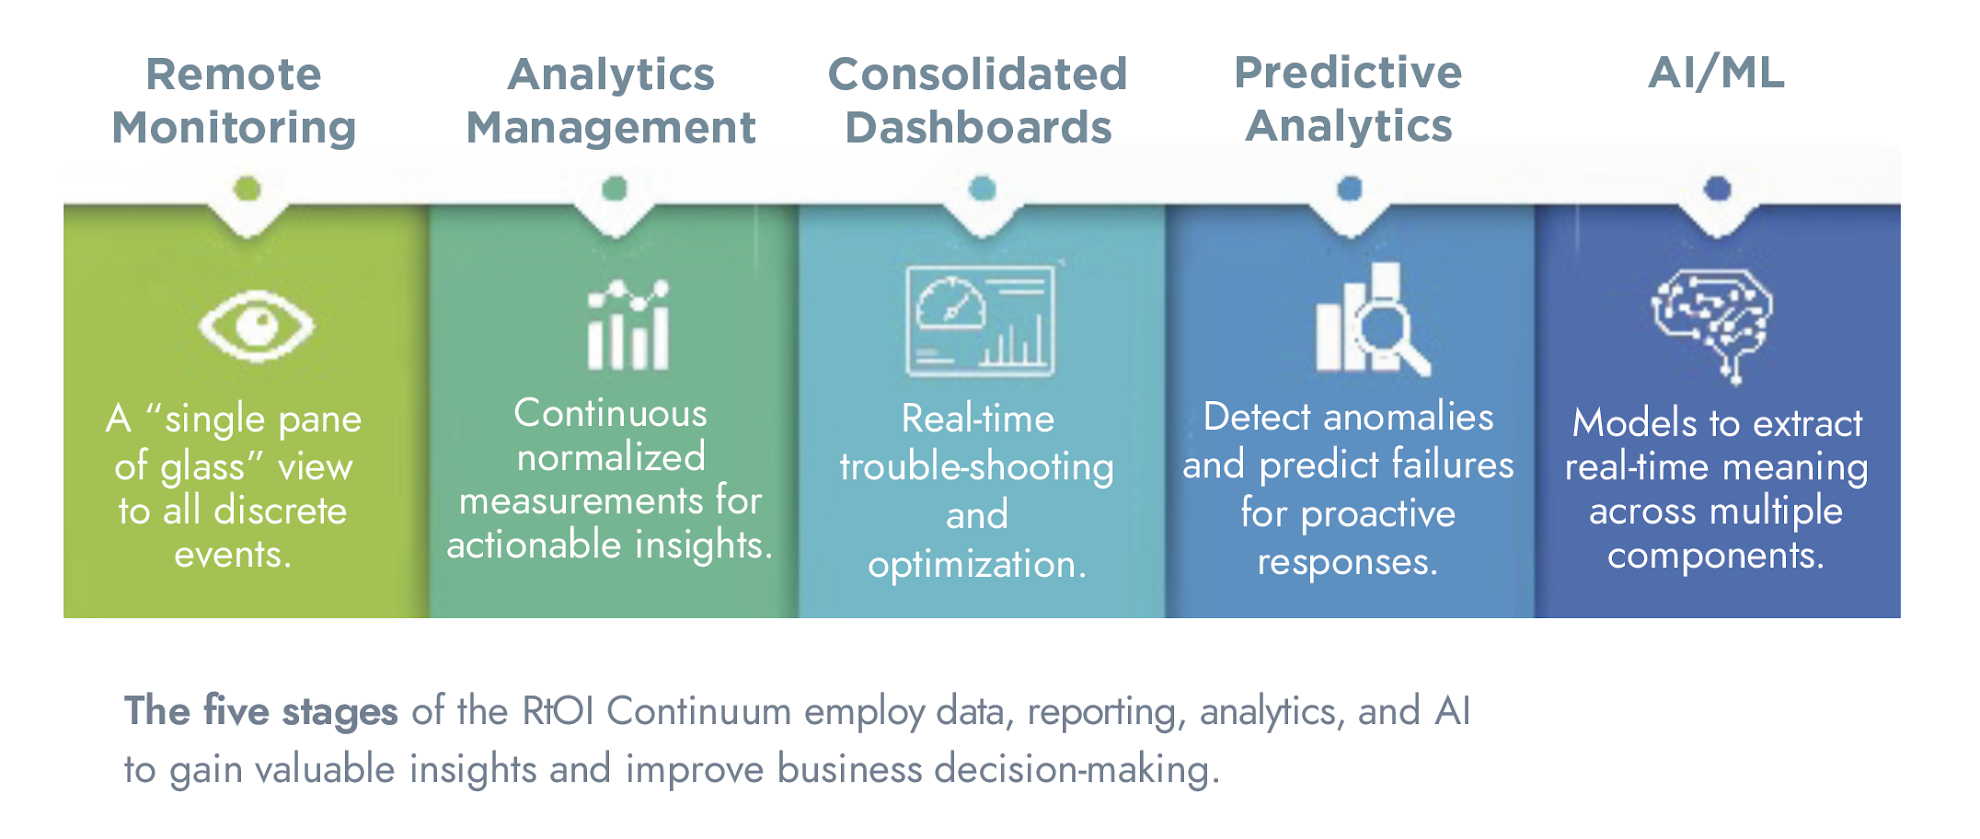 The five stages of the RtOI Continuum employ data, reporting, analytics, and AI to gain valuable insights and improve business decision-making.